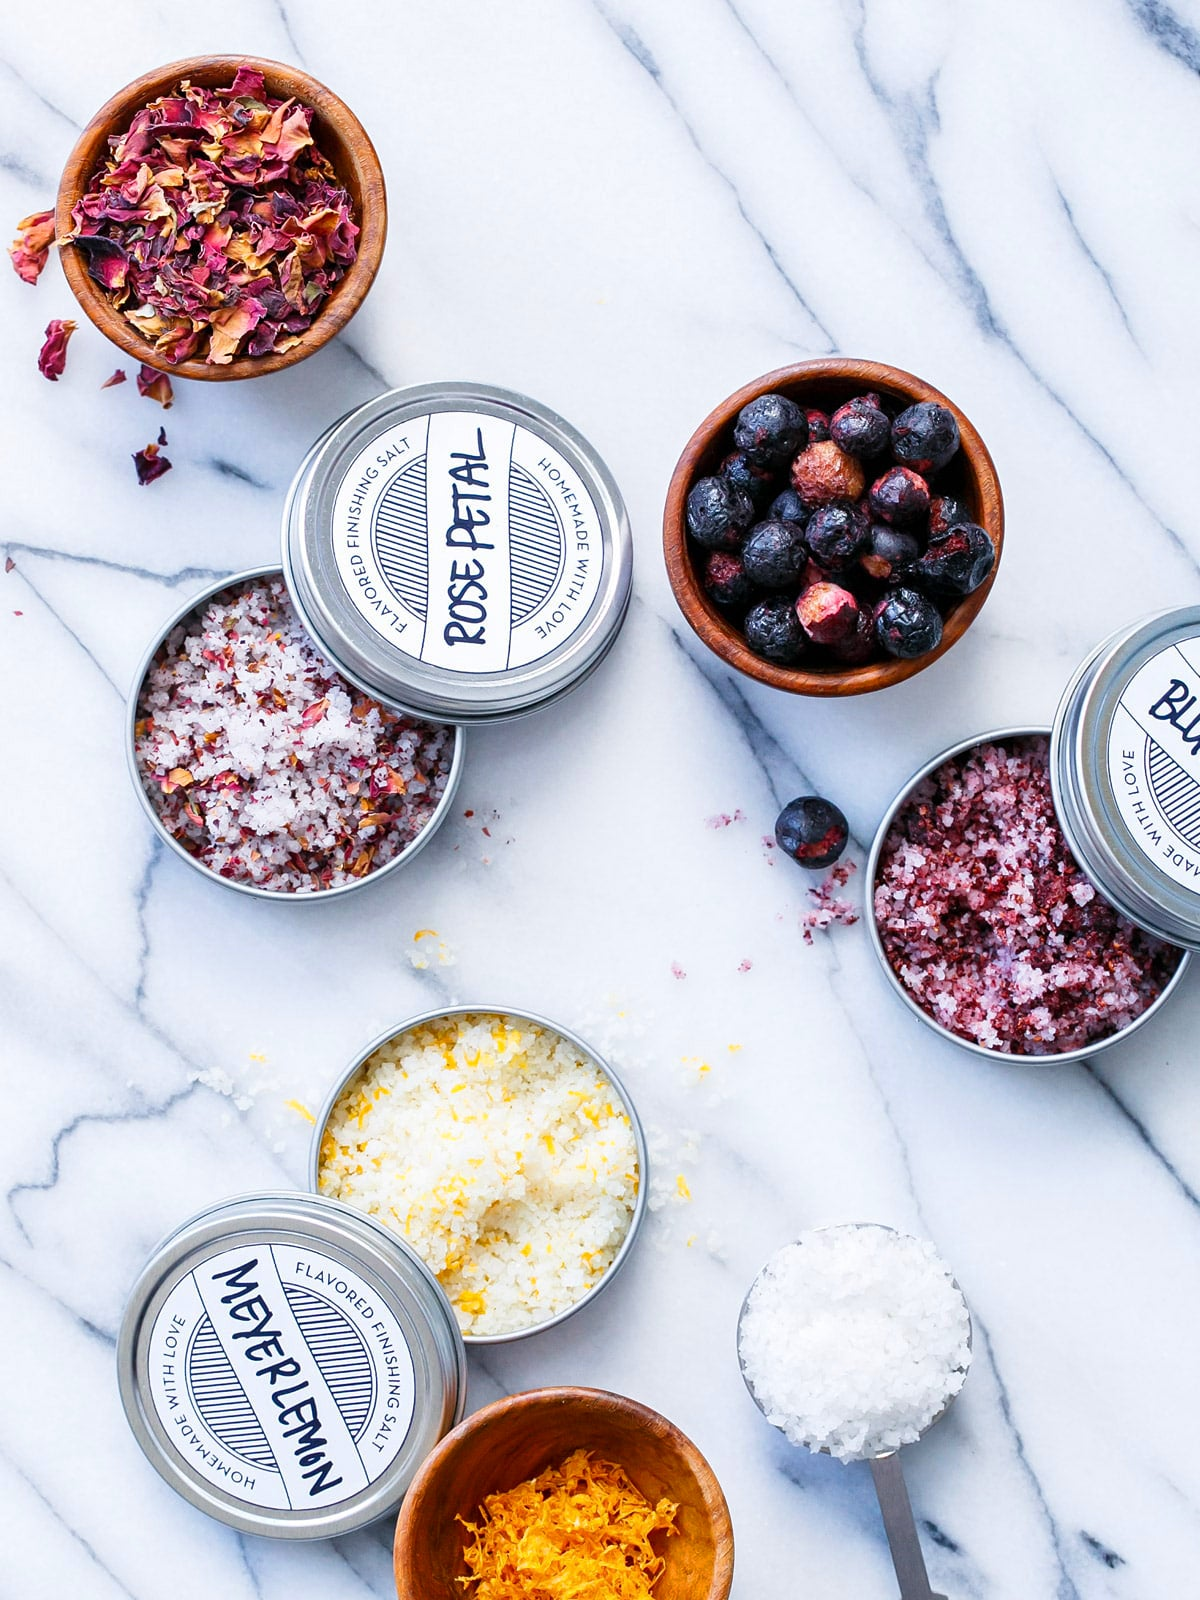 00-FEATURE-DIY-Food-Gifts-domino-Finishing-Salts